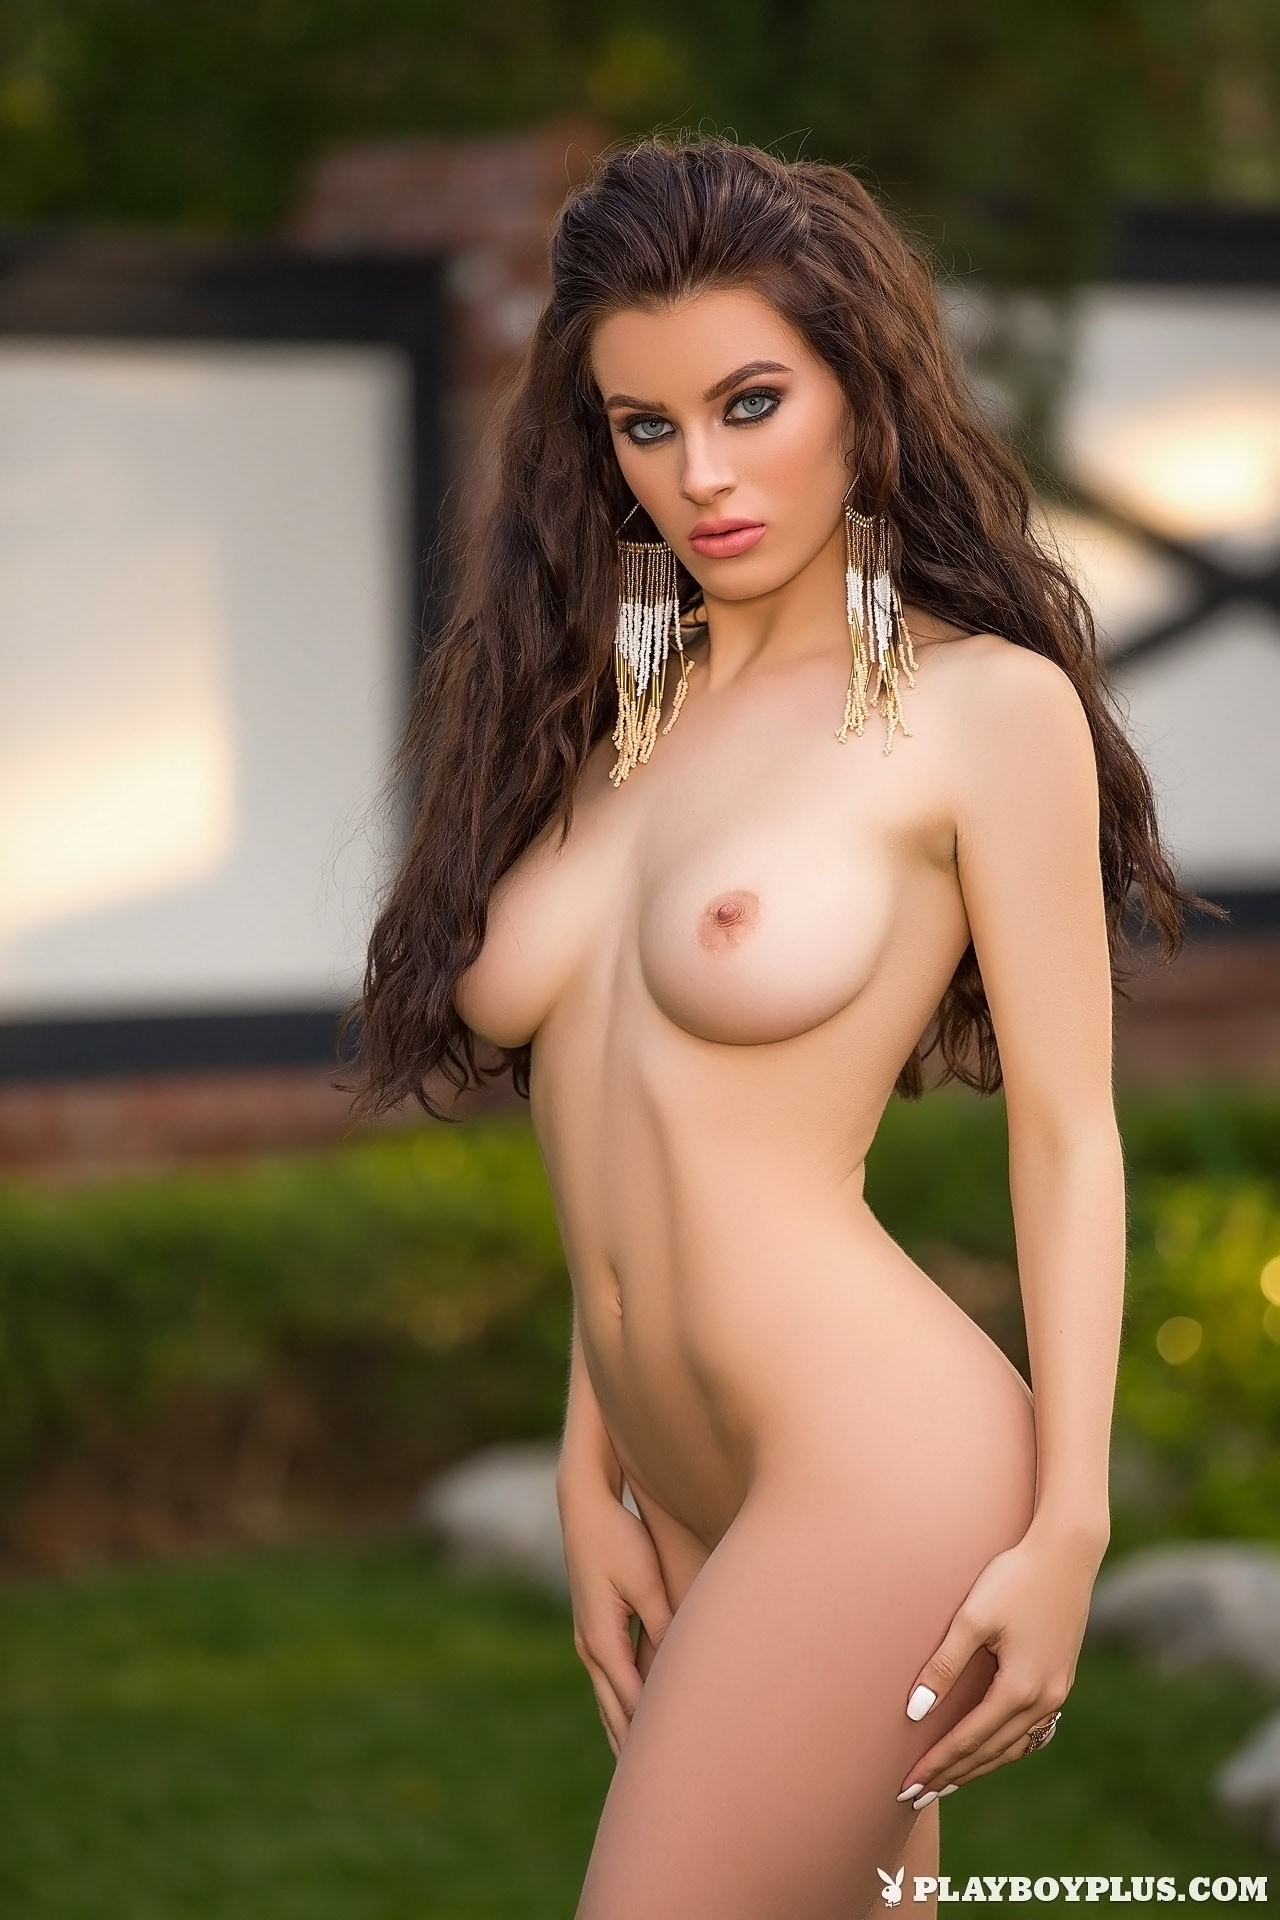 Lana Rhoades has No Inhibitions | A Tribute to Playboy